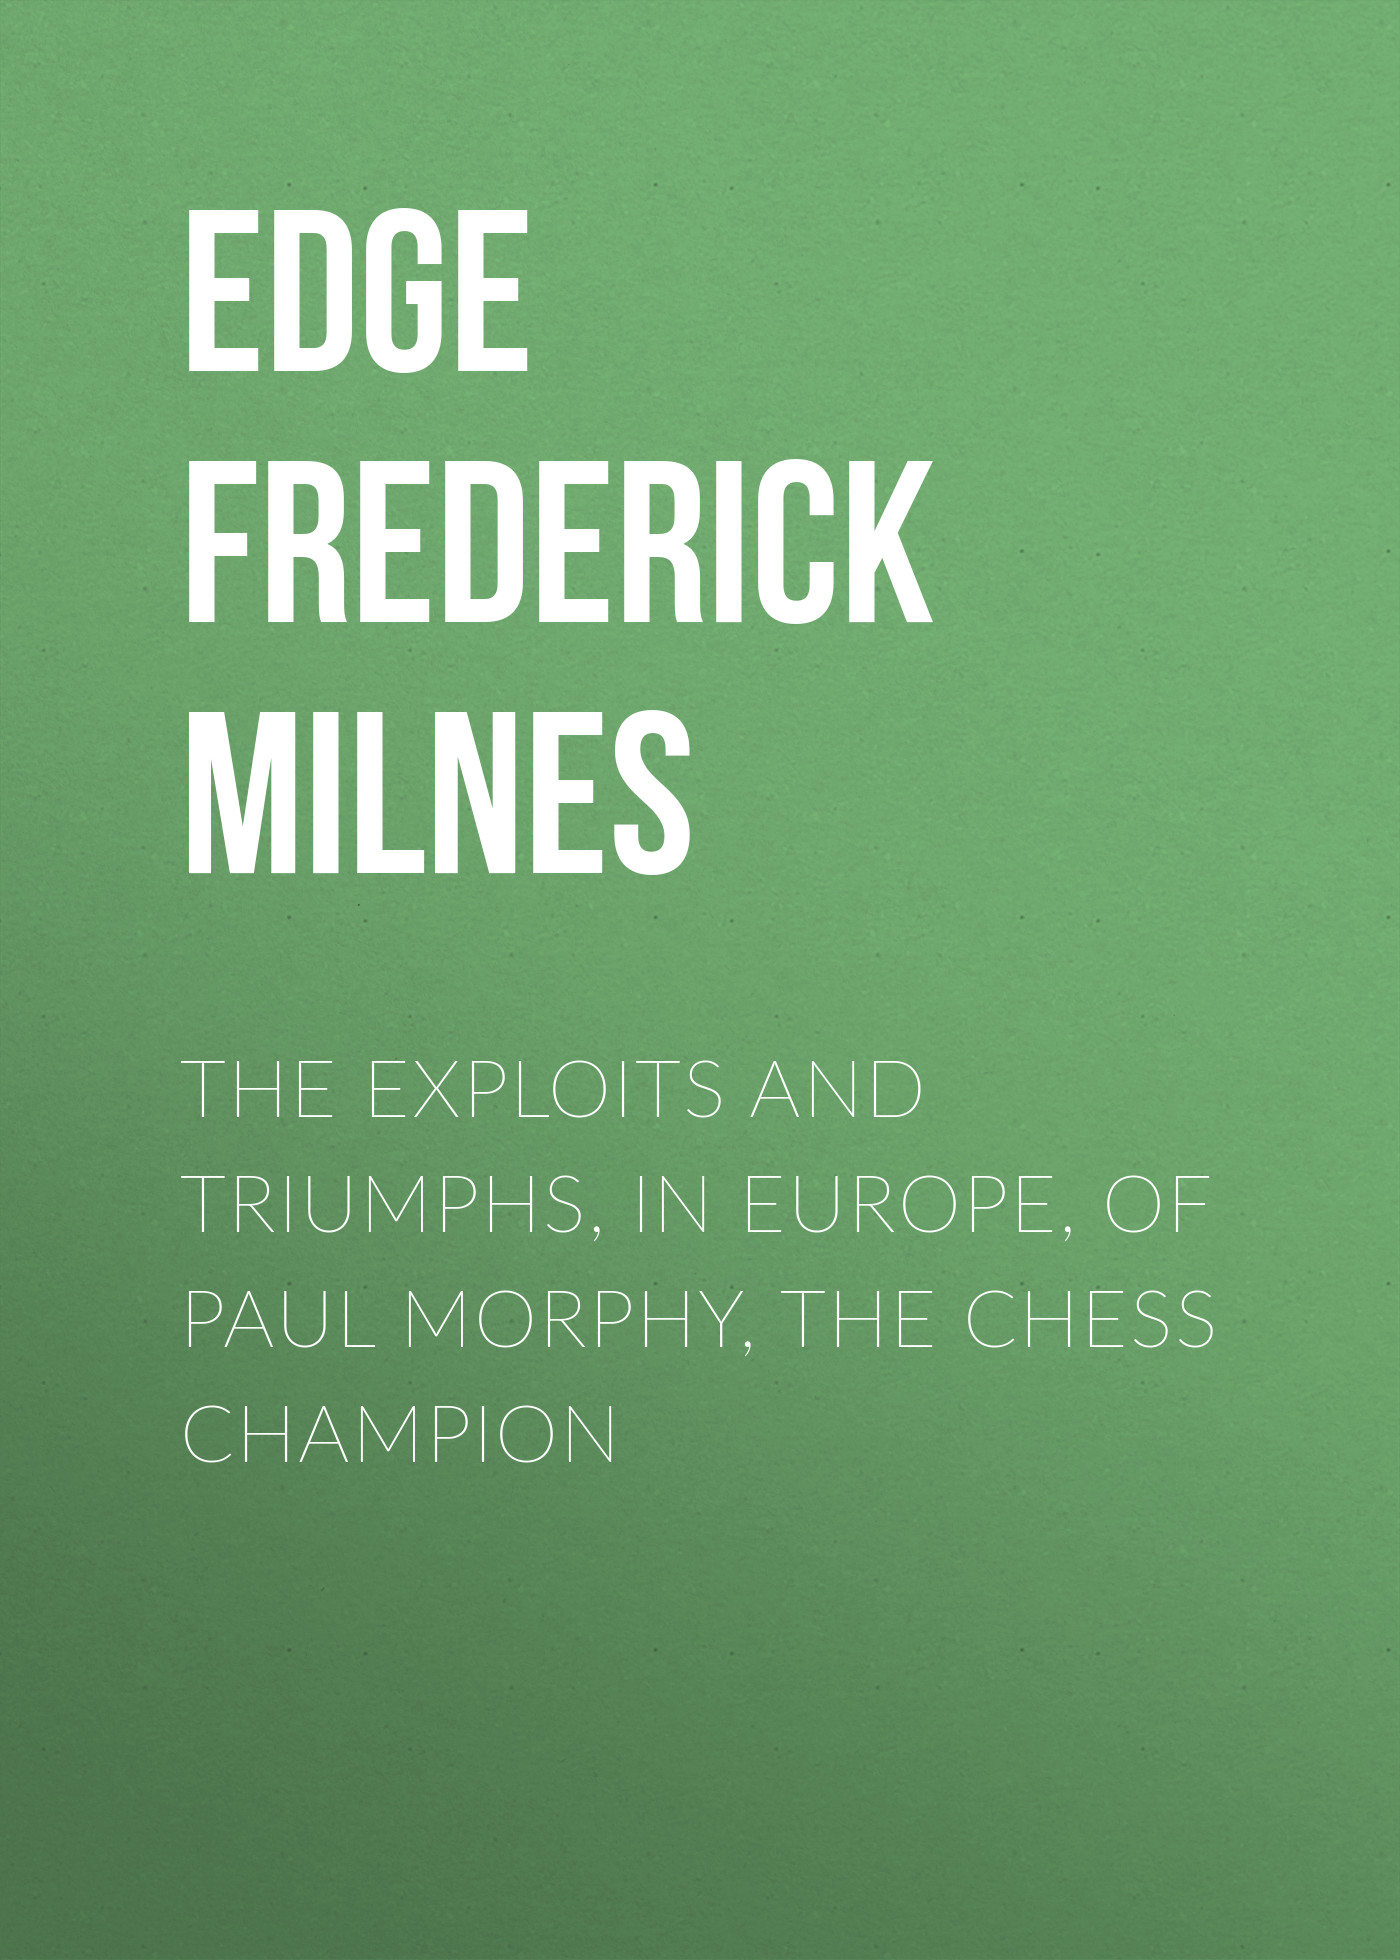 Edge Frederick Milnes The Exploits and Triumphs, in Europe, of Paul Morphy, the Chess Champion 16 single c500 europe b250k associated potentiometer shaft length of 20 half rib 8mm